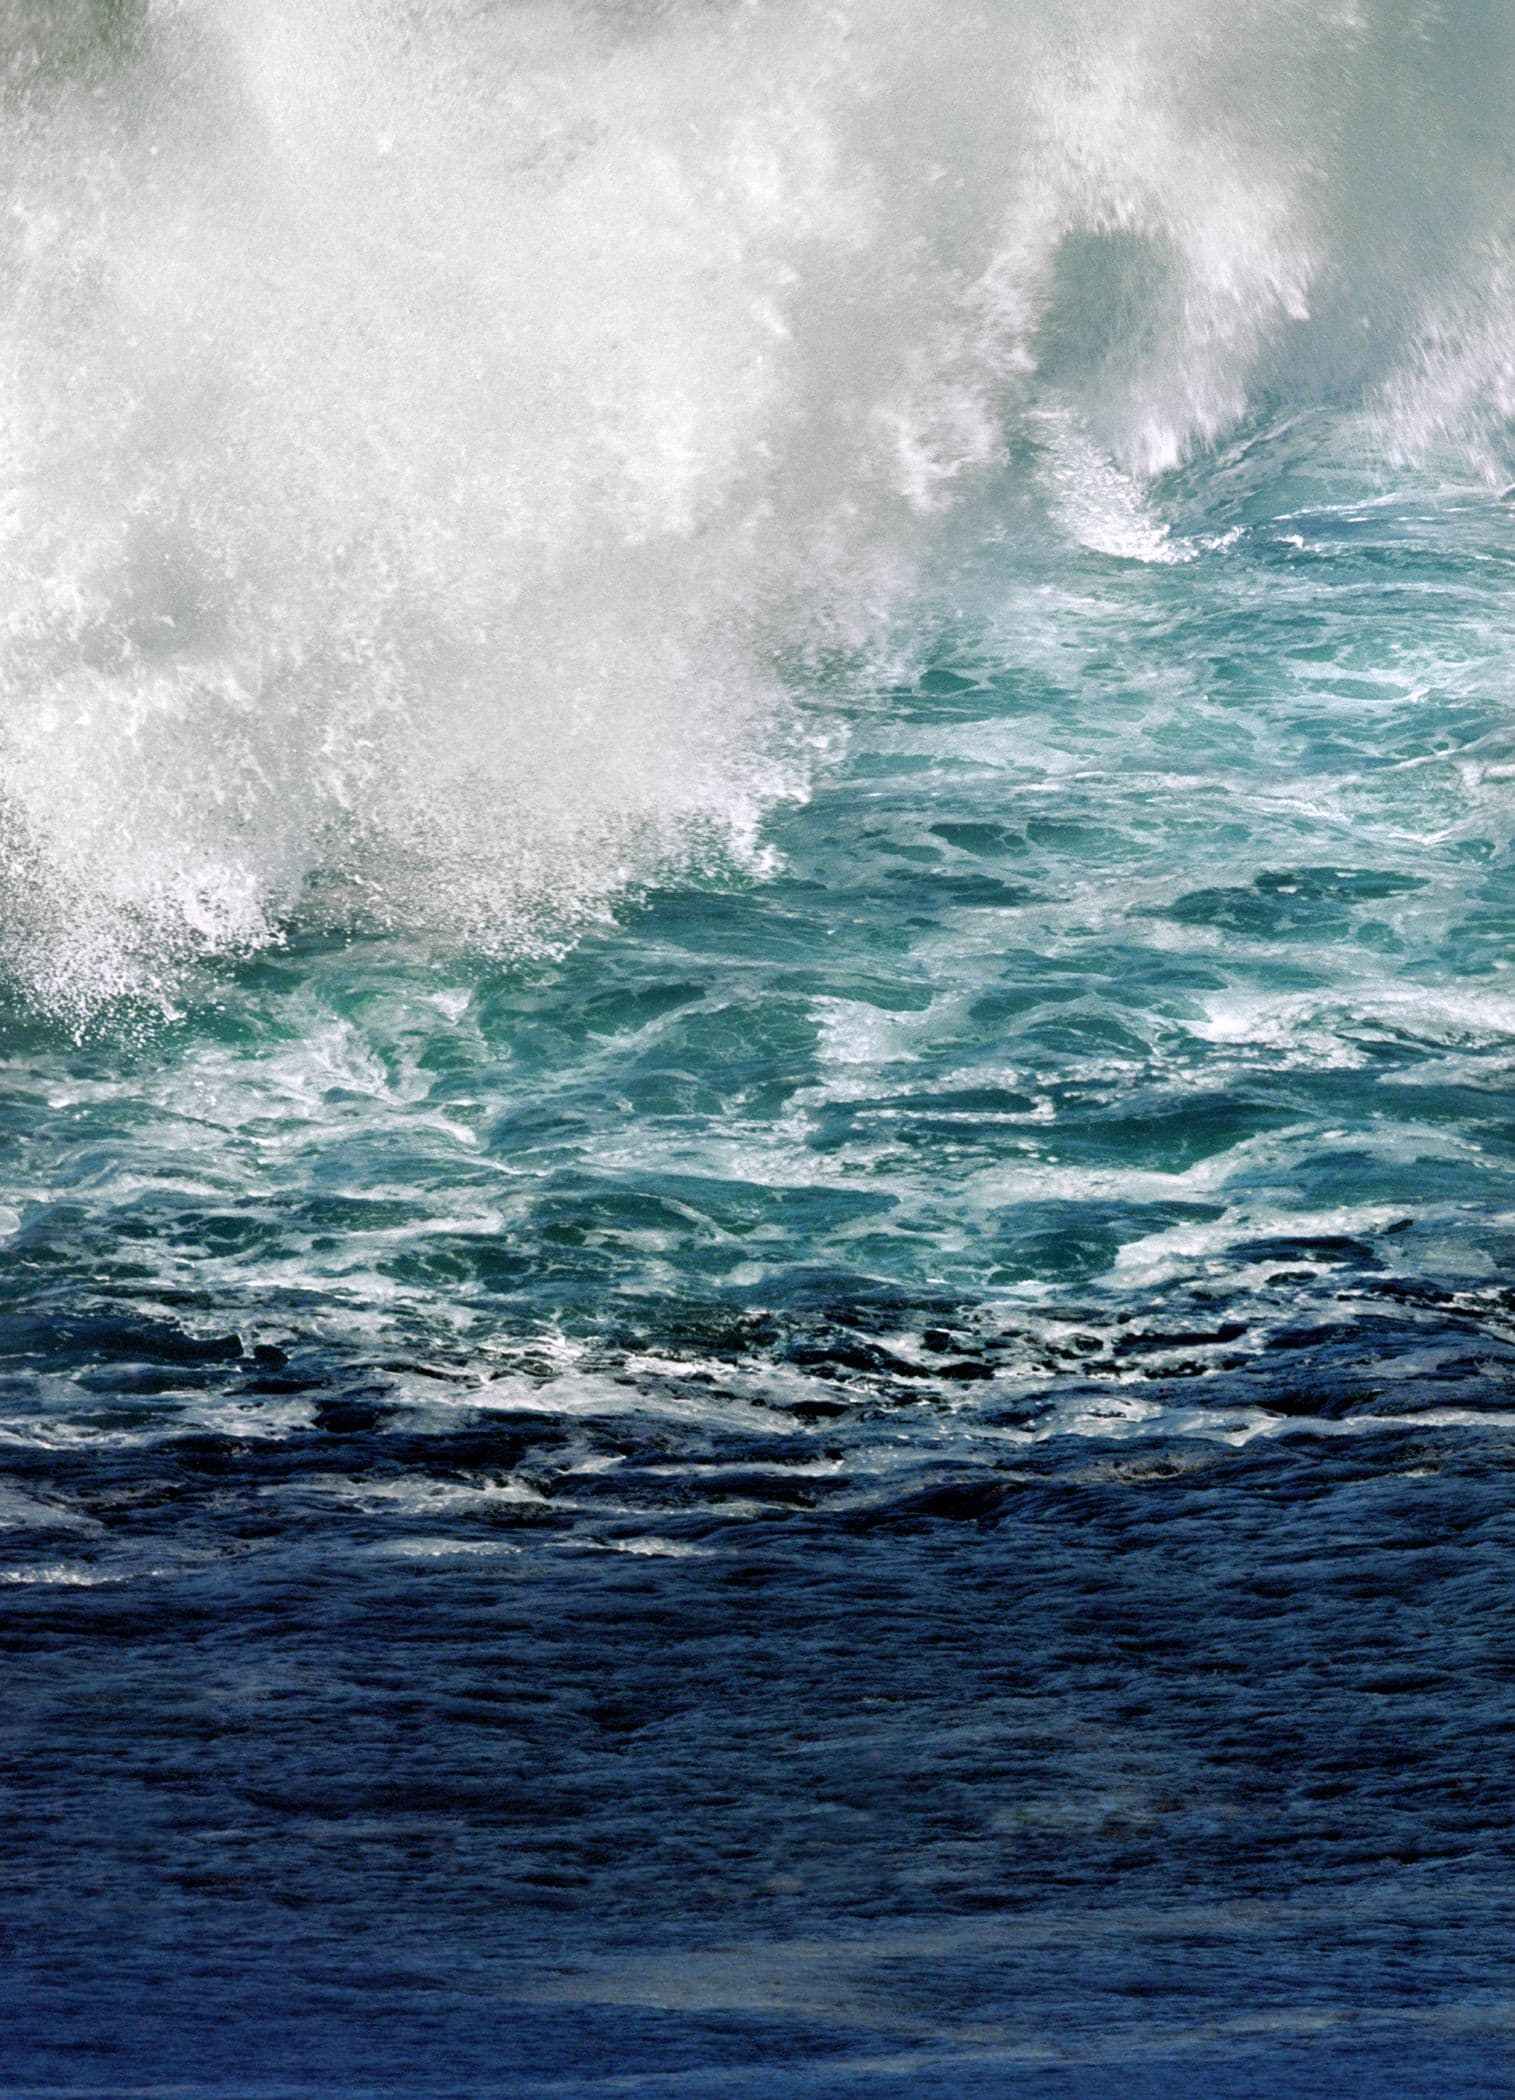 Photography by Tabitha Soren seen at Private Residence, Stinson Beach - Panic Beach - Oceanscapes, waves crashing, water